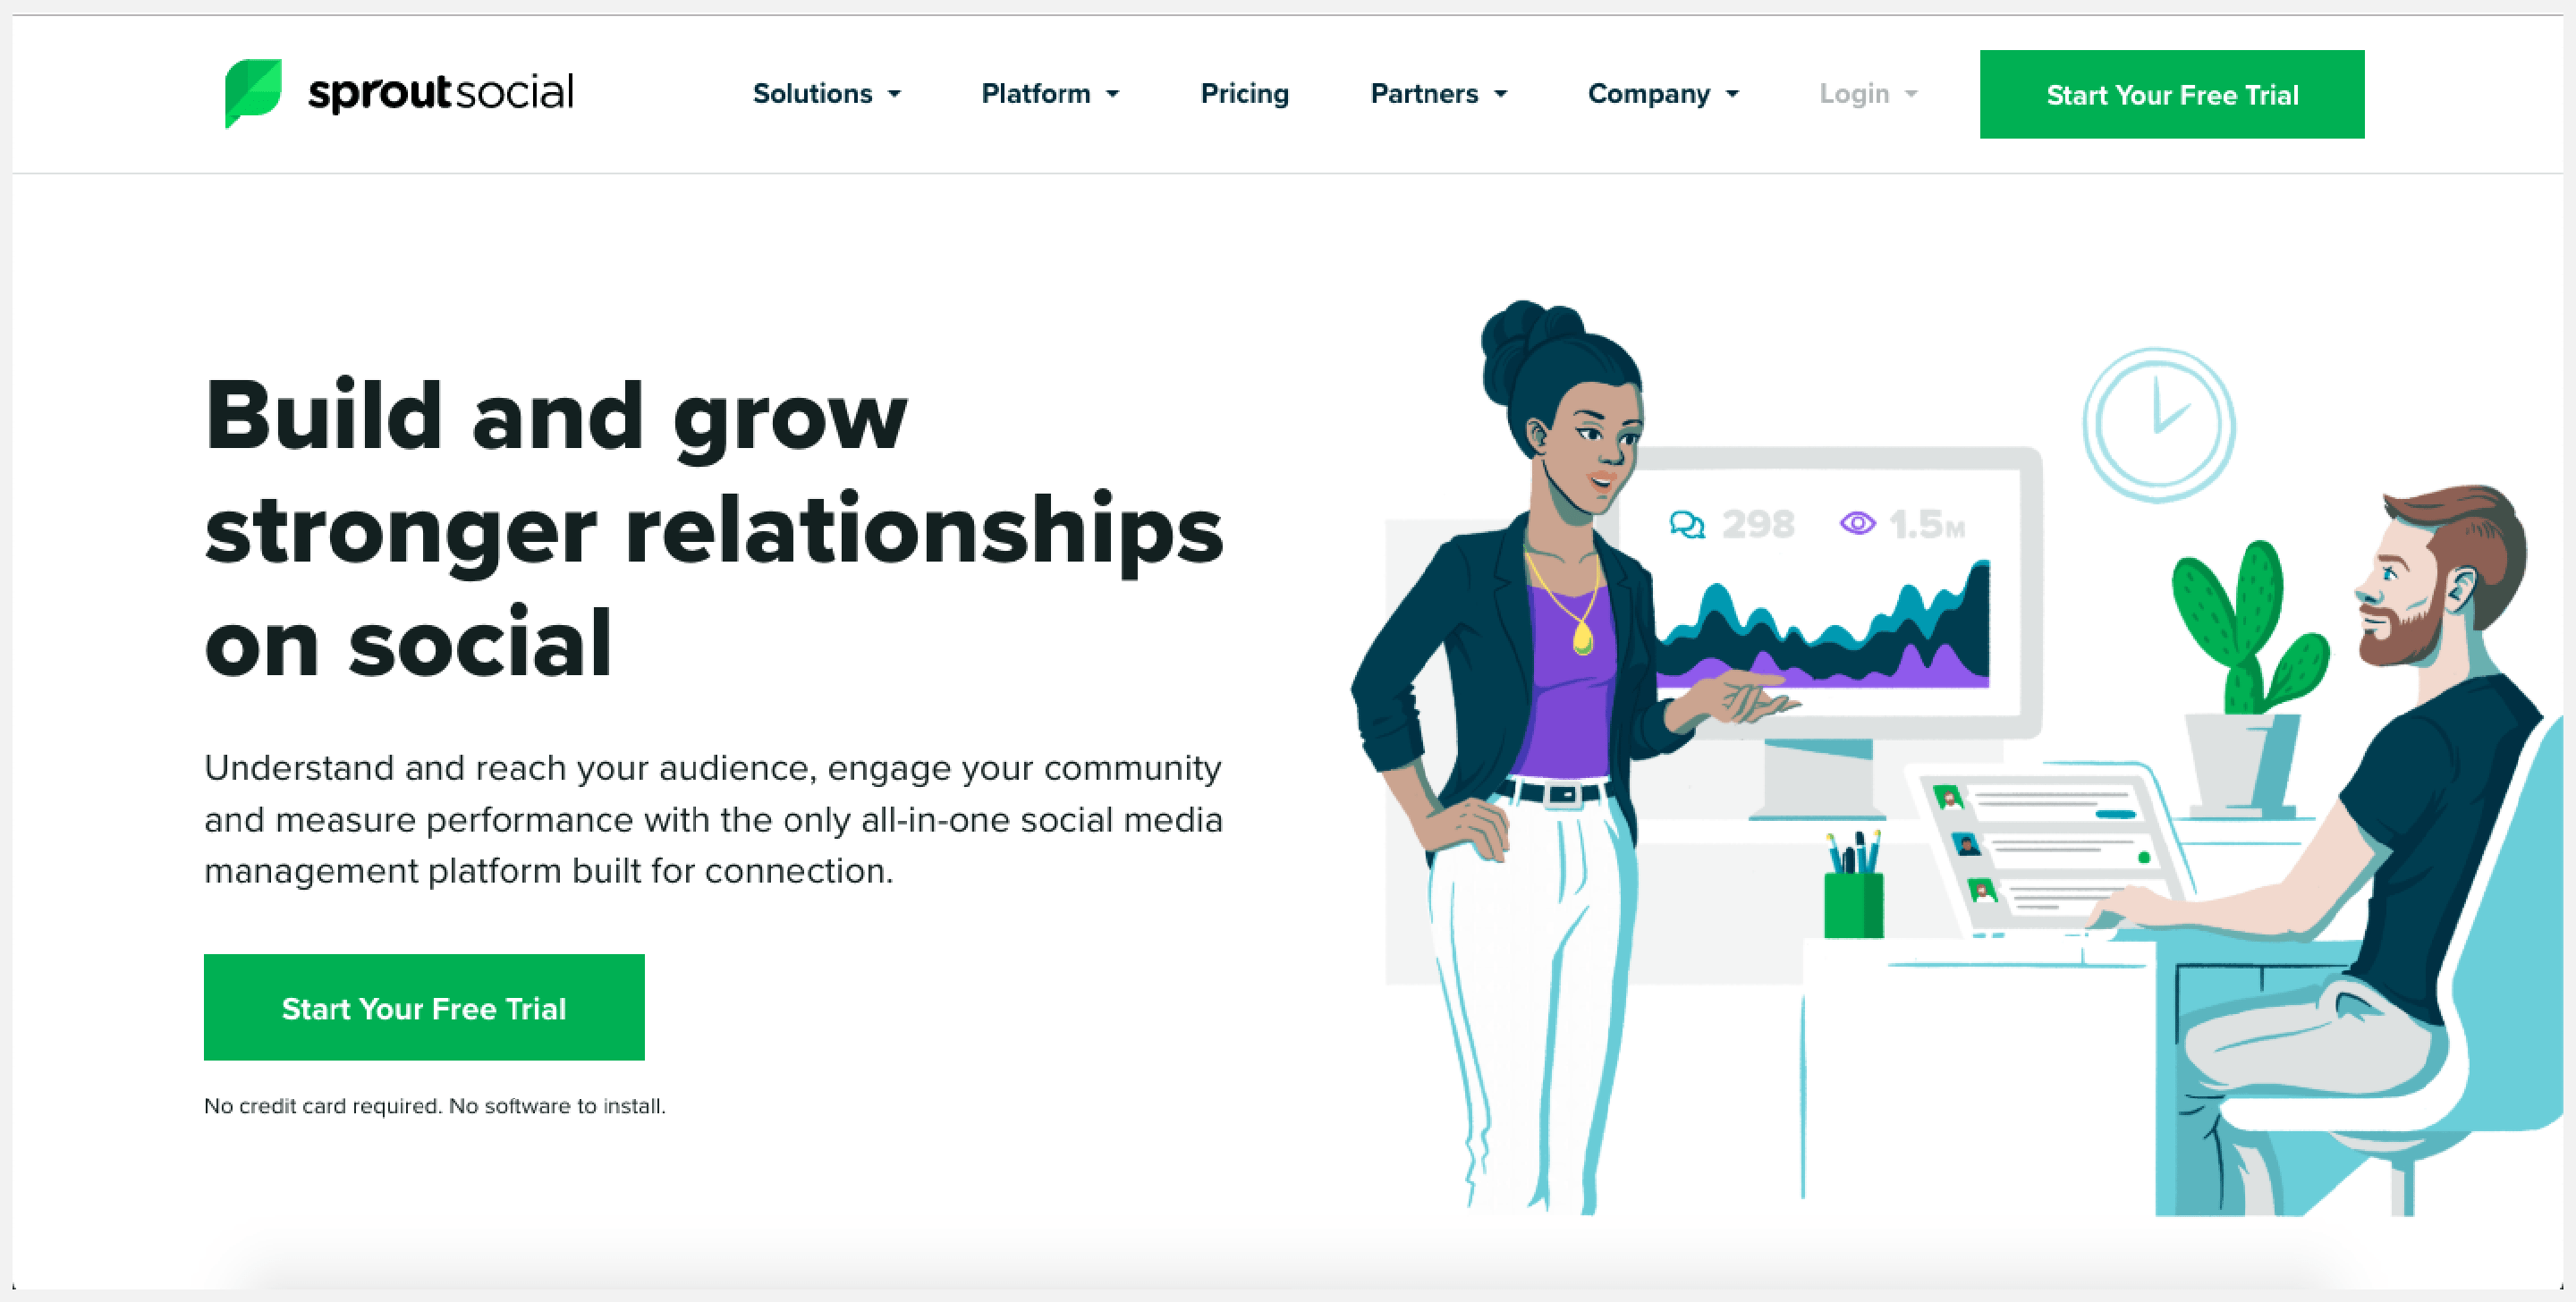 Social Sprout is one of the few social management tools that provide CRM features.